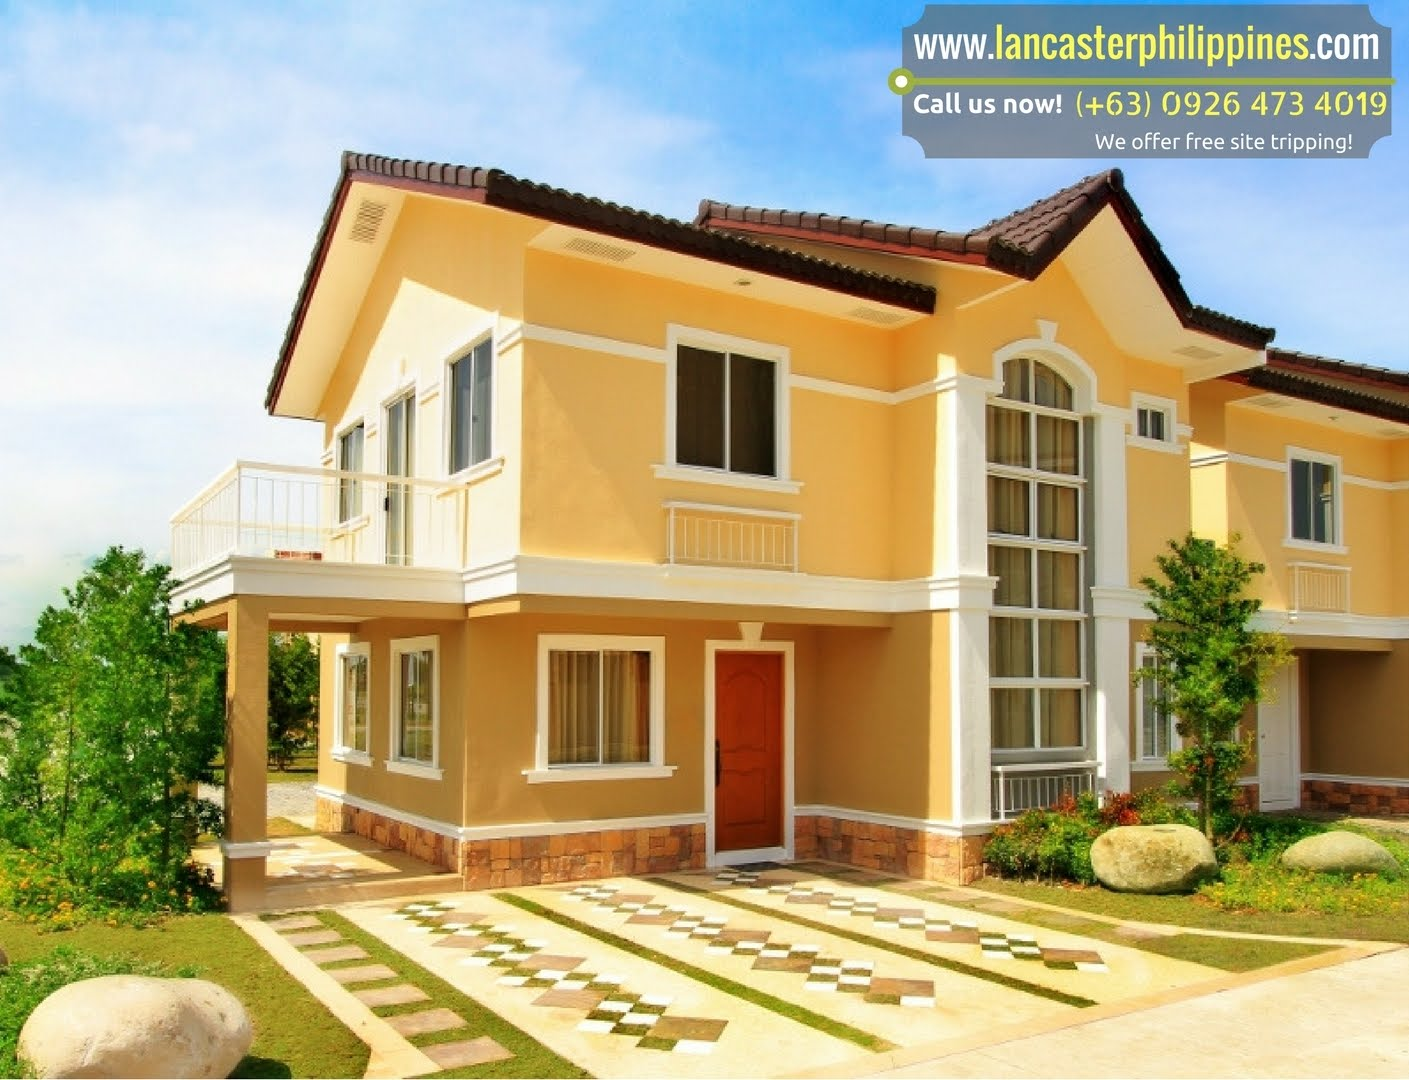 Alexandra - Lancaster New City Cavite| Affordable House for Sale in Imus-General Trias Cavite